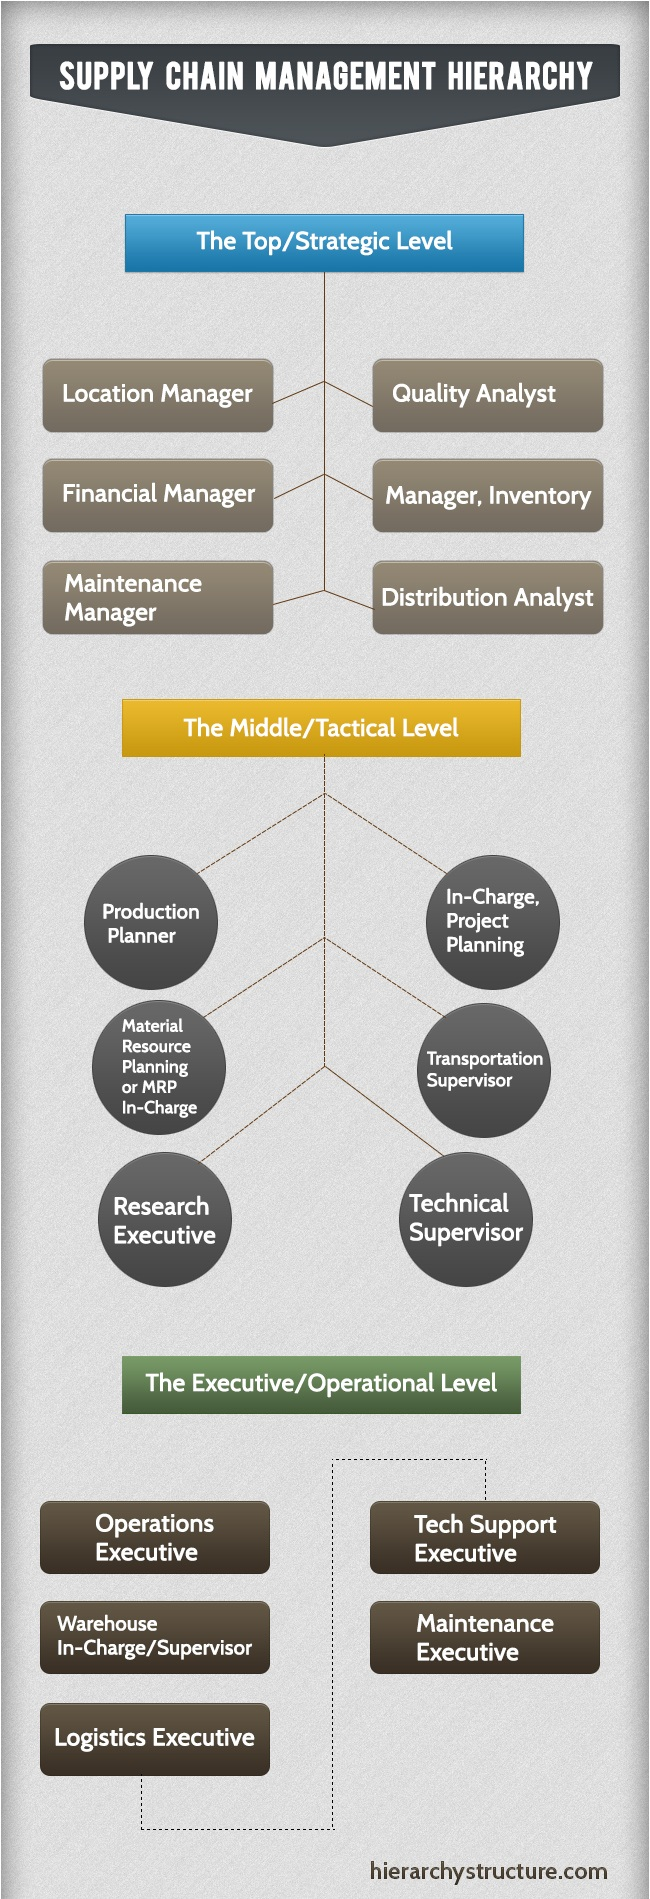 the management research hierarchy for ramada The flattening of corporate management the number of levels in the management hierarchy james poterba is president of the national bureau of economic research.